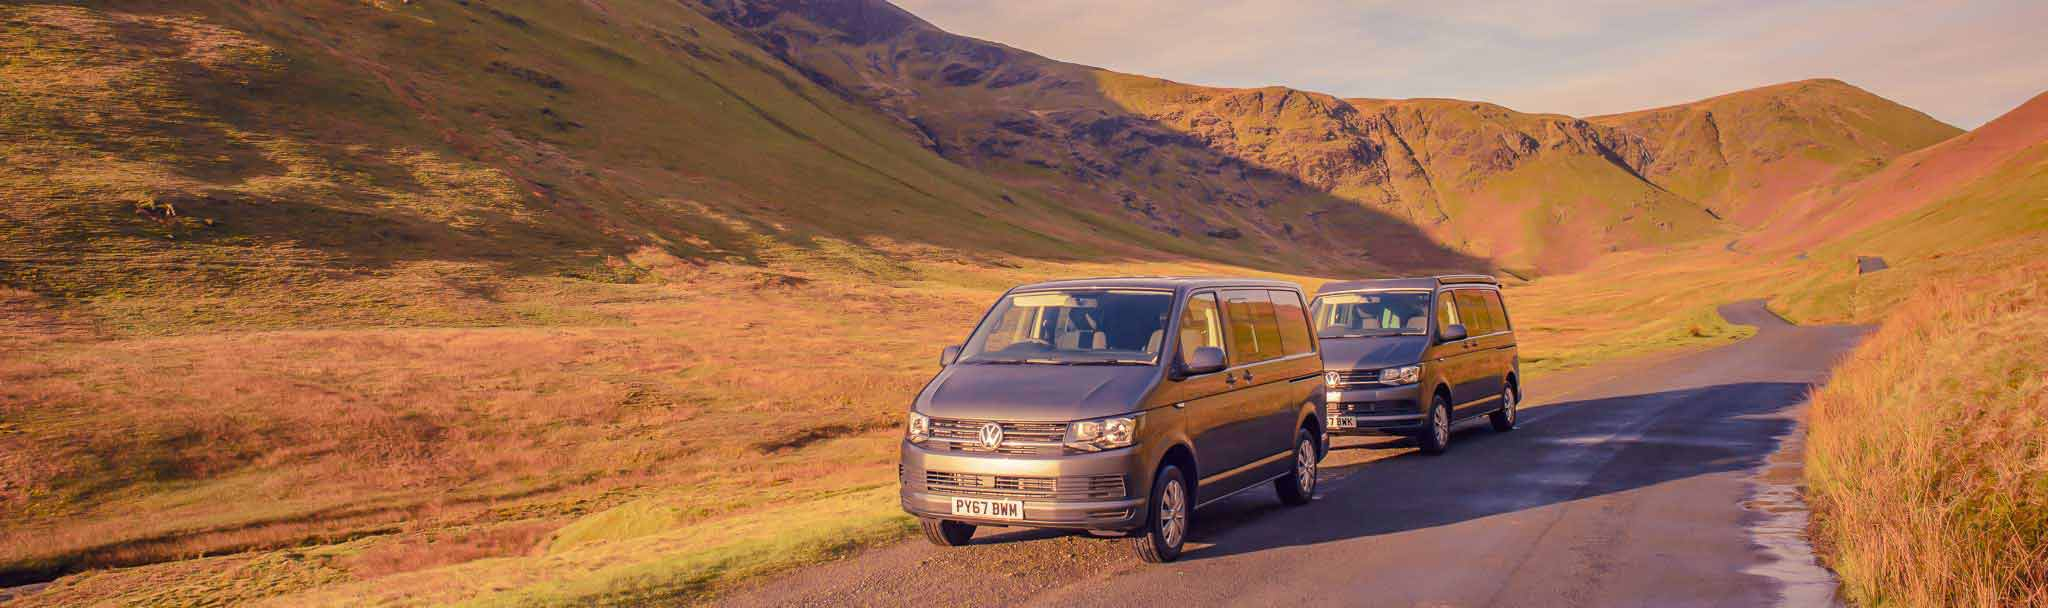 cumbria vw campervan hire